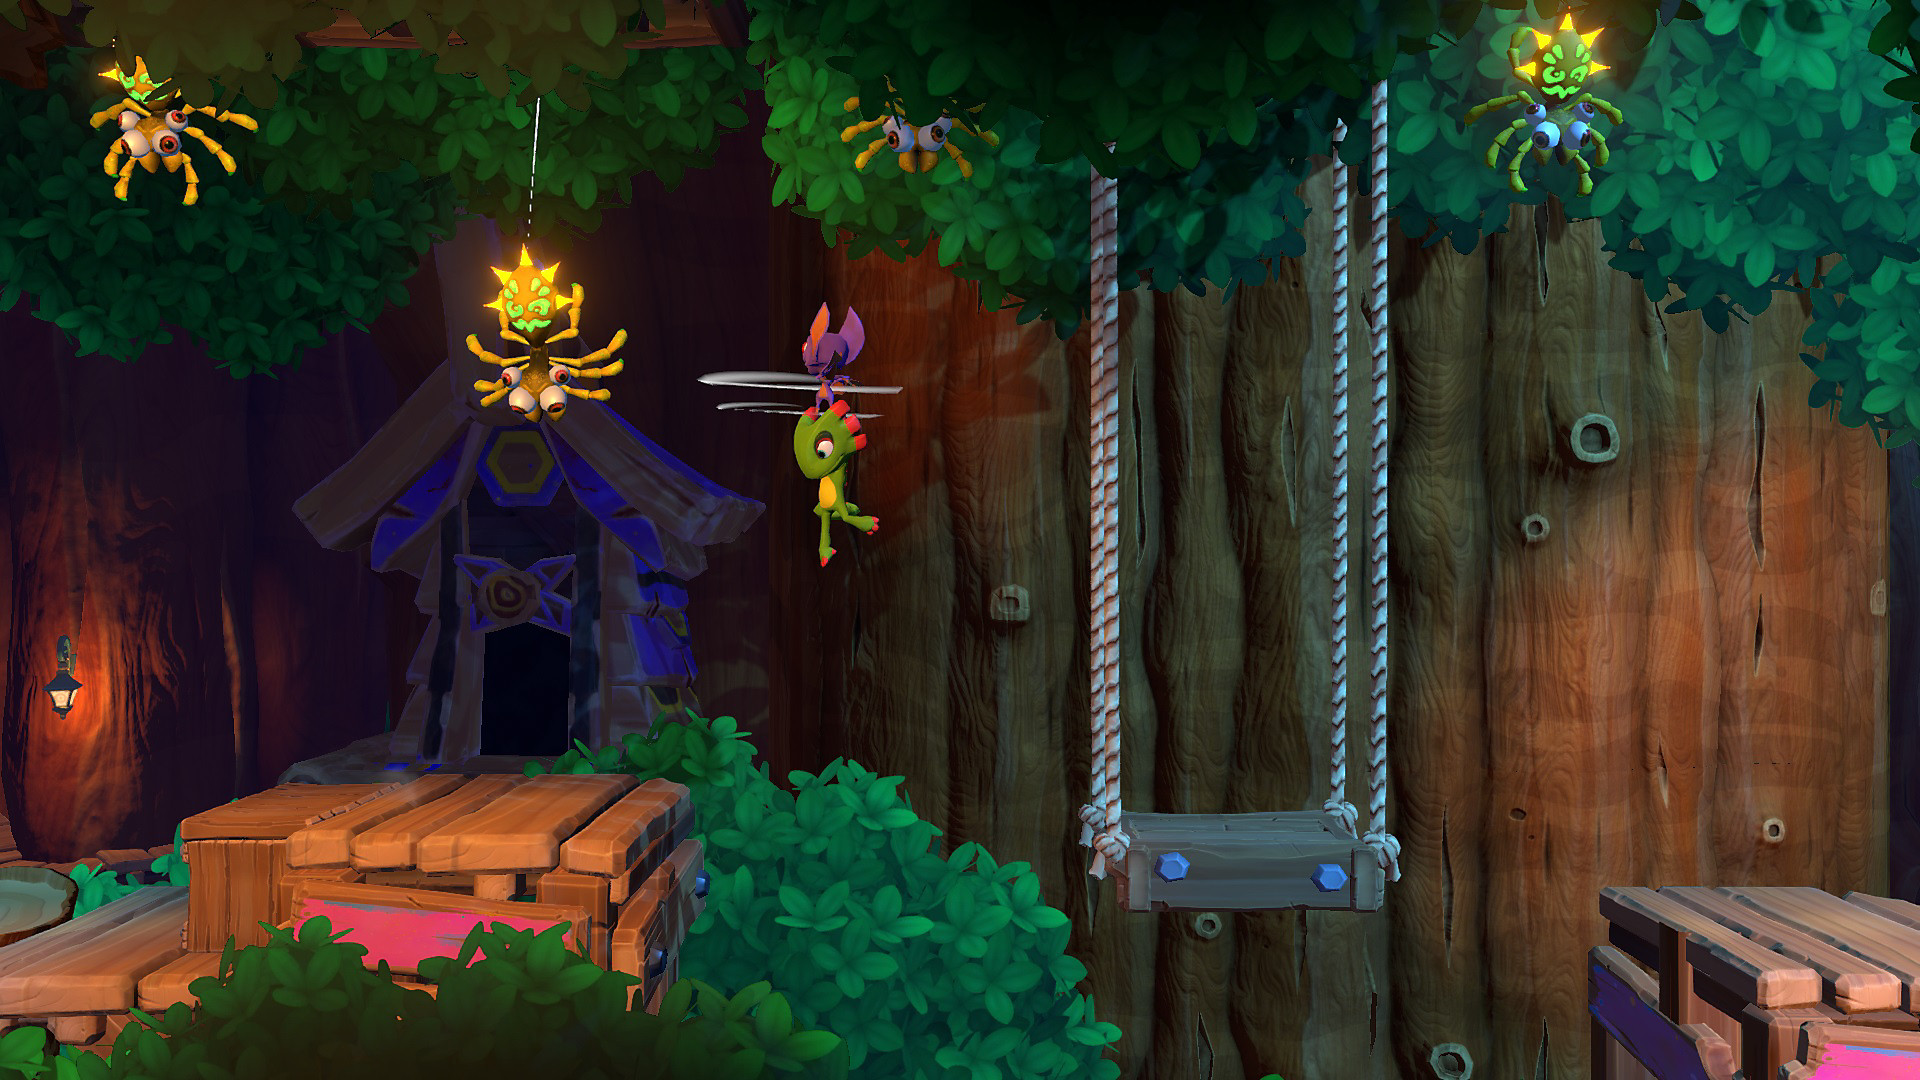 Yooka-Laylee and the Impossible Lair in Action